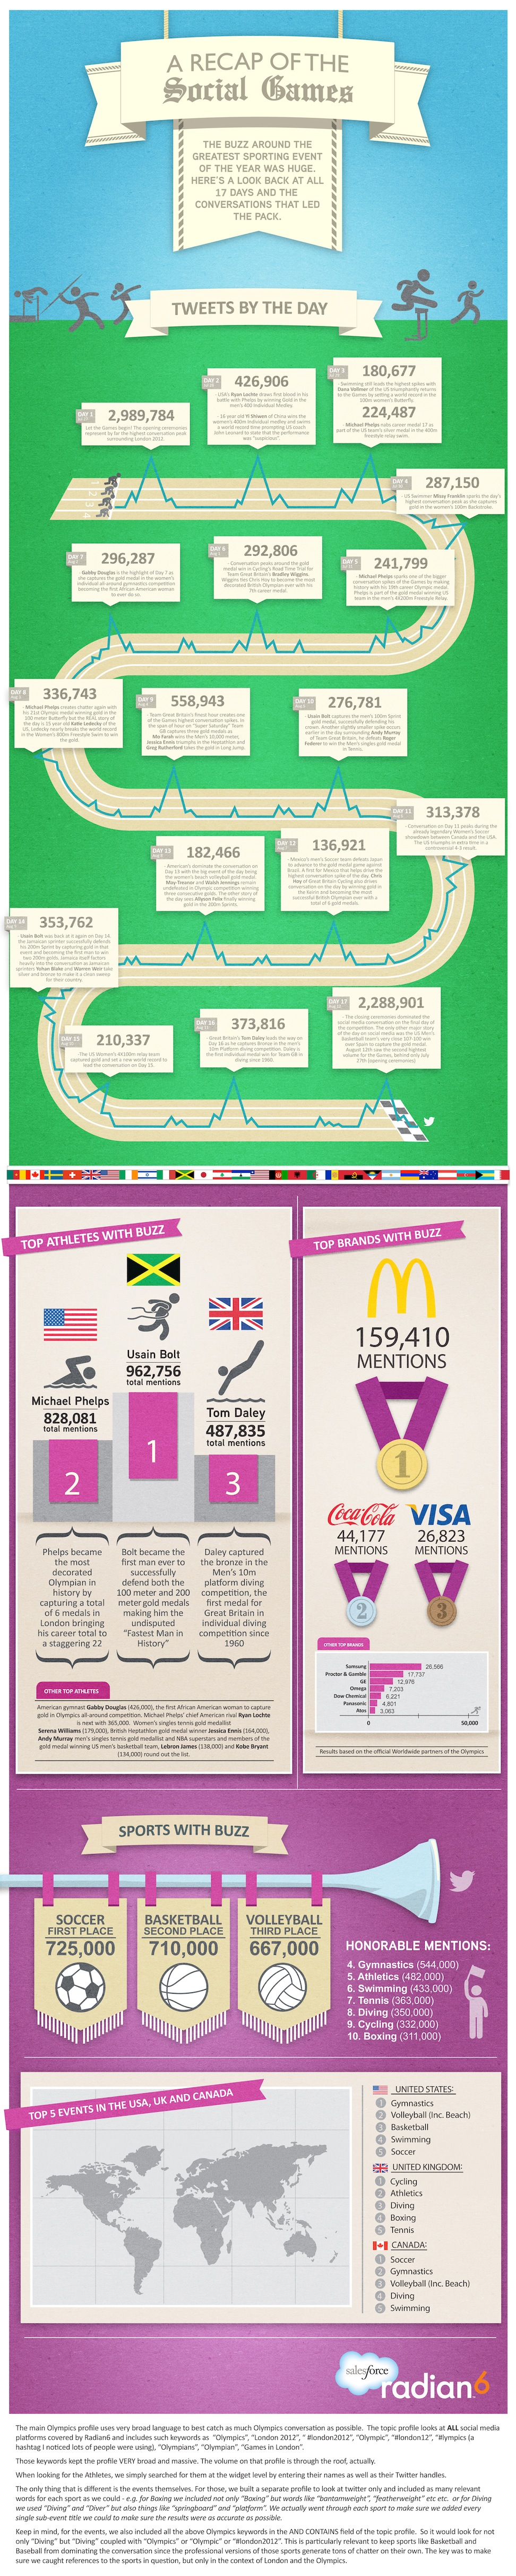 A Recap Of The Social Olympic Games Infographic Infographic Marketing Facebook Marketing Infographic Social Media Infographic